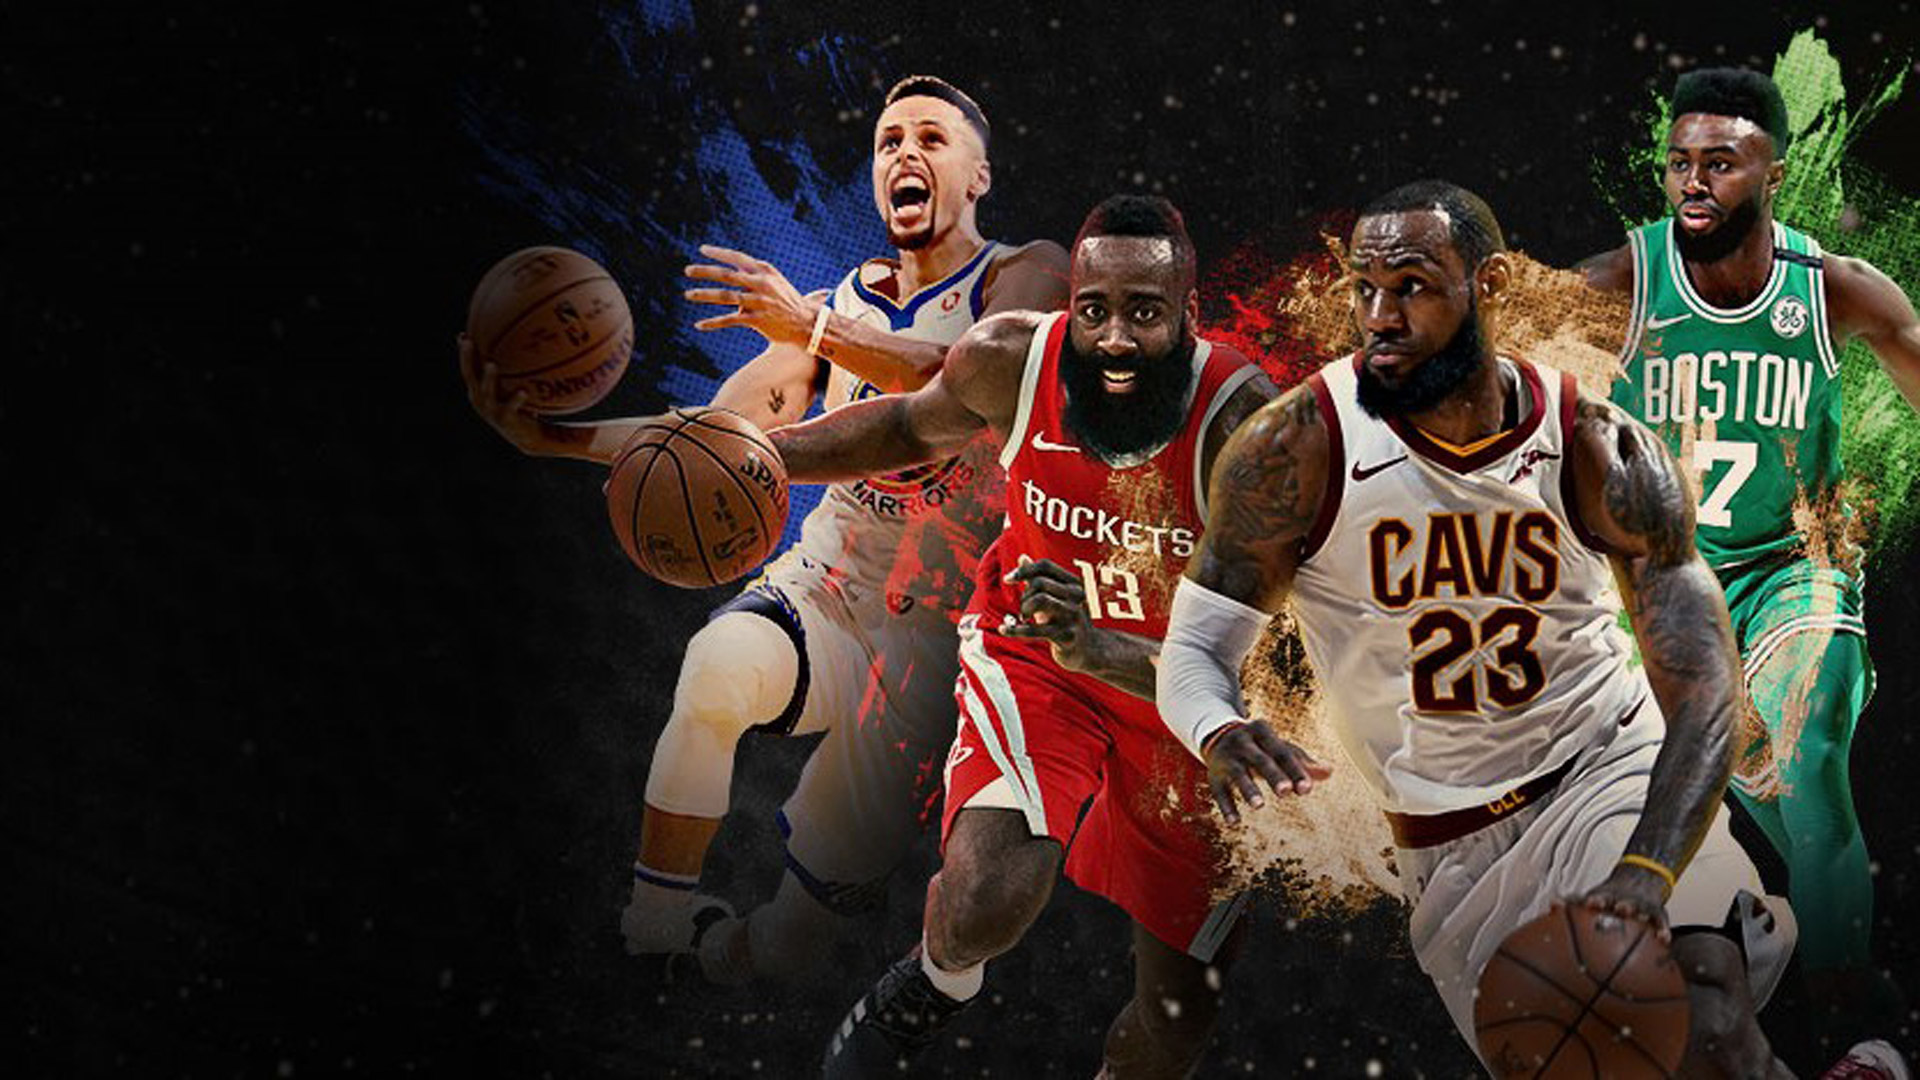 fd178346e2c2 NextVR Introduces NBA 2017-2018 MVP Highlight Reel in Virtual ...